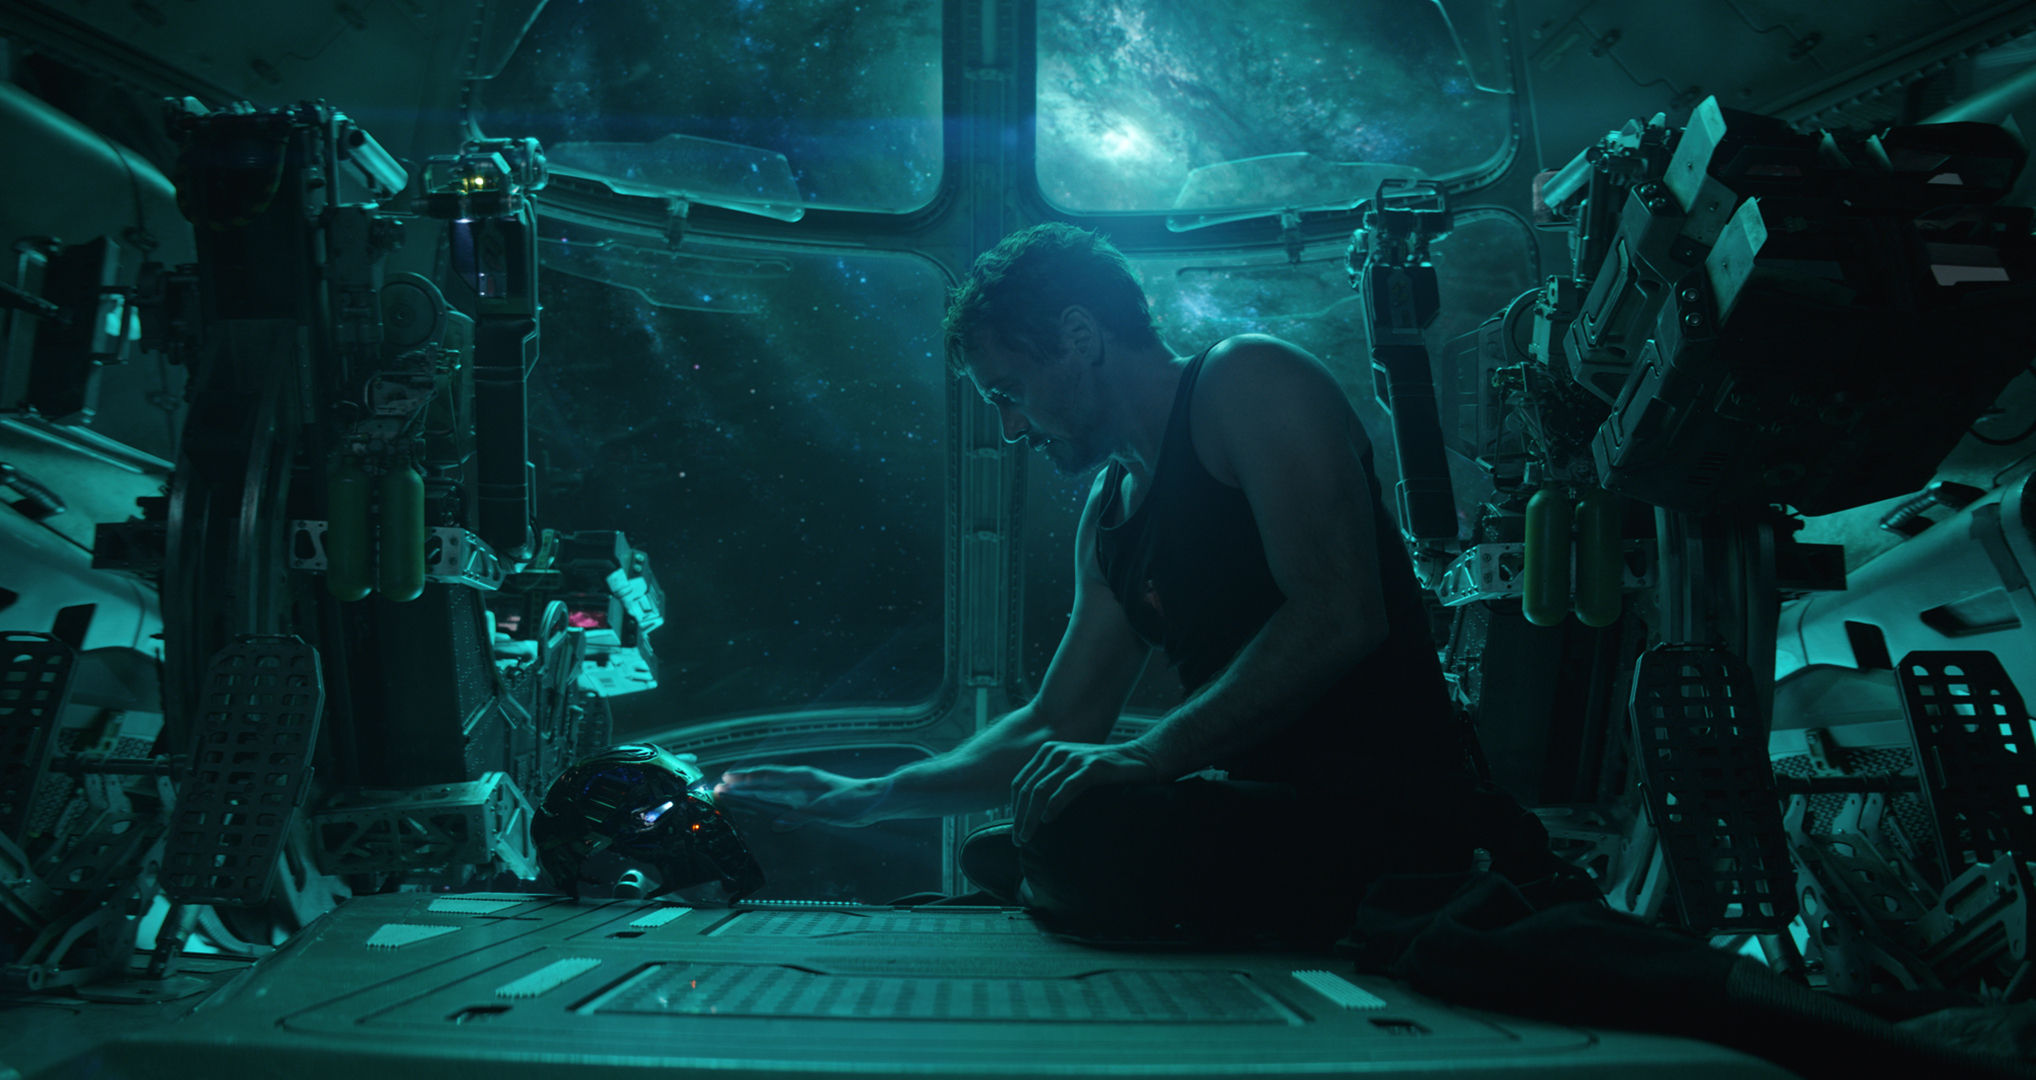 A film still from Avengers: Endgame.